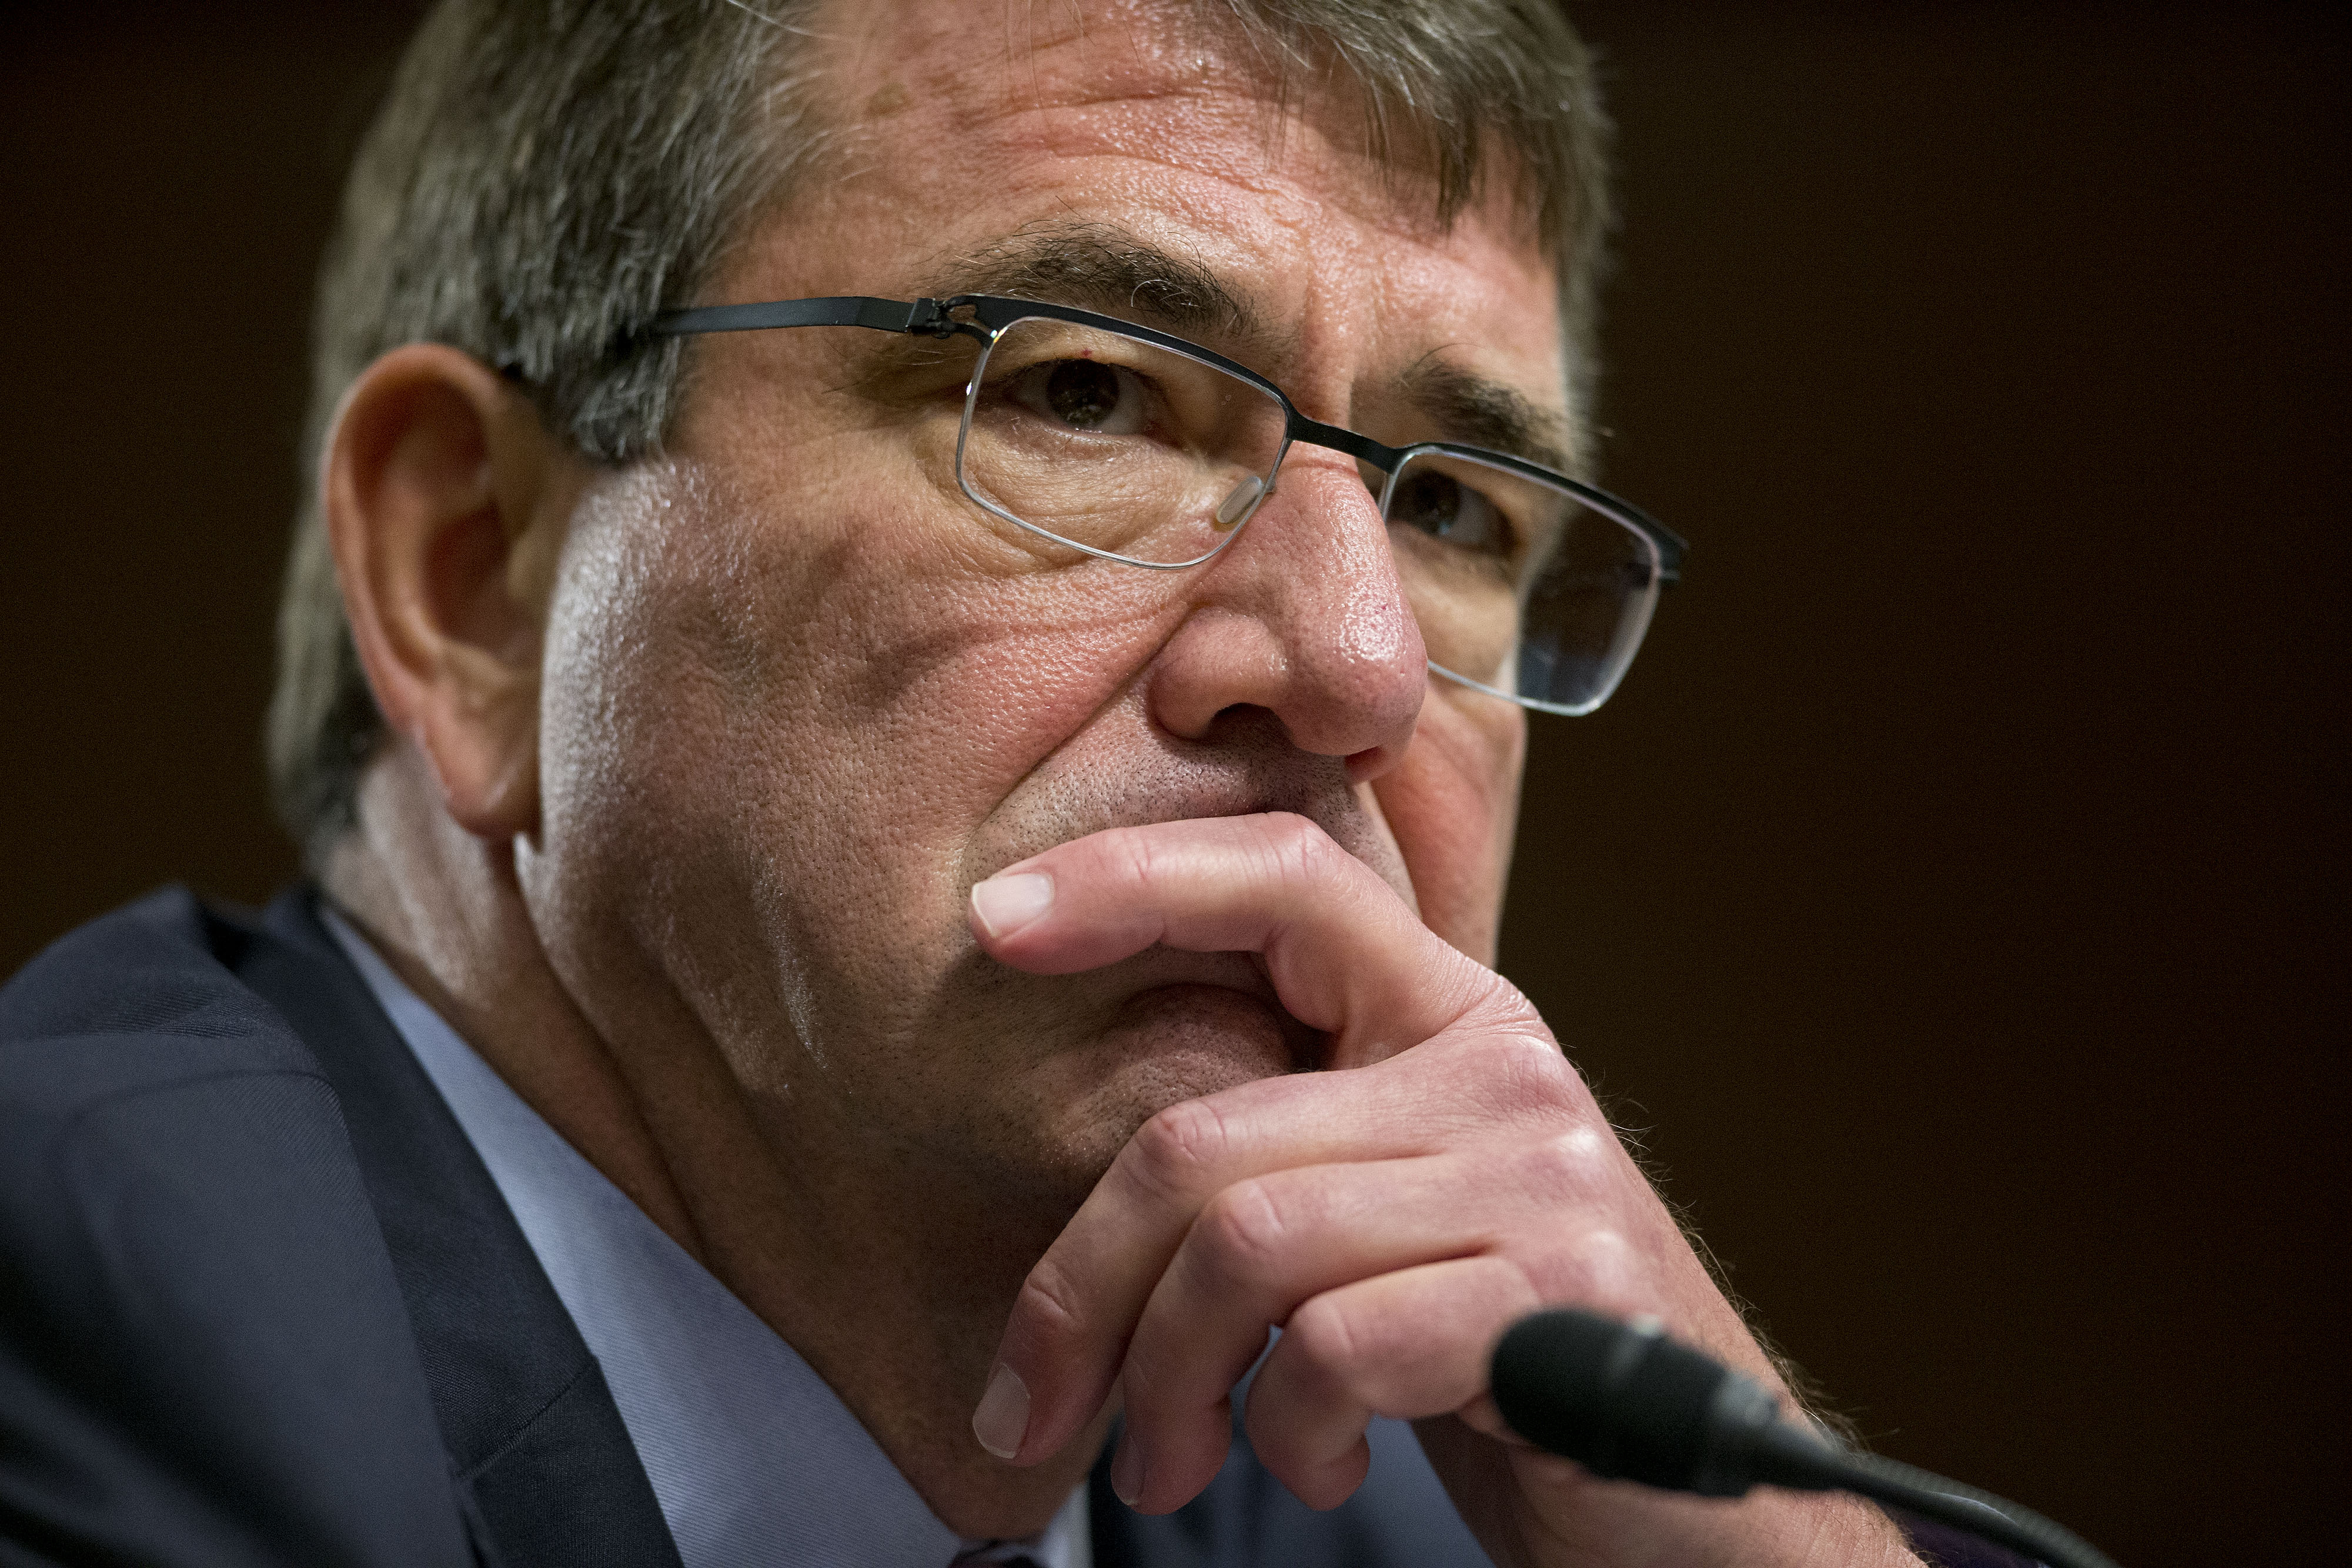 Ashton Carter listens during a Senate Armed Services Committee hearing on the U.S. military strategy in the Middle East in Washington, D.C. on Oct. 27, 2015.